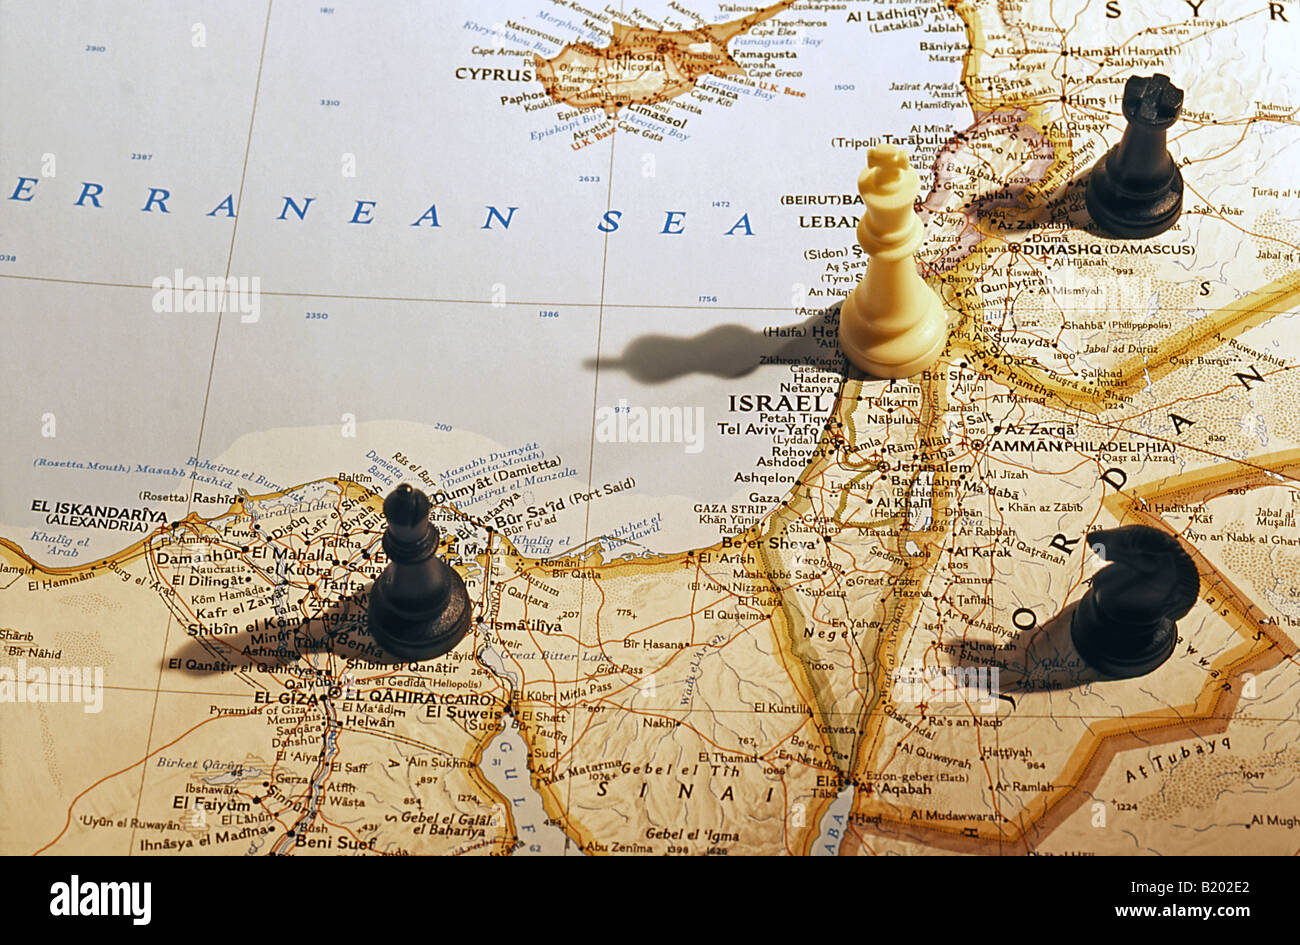 Chess pieces on map of israel egypt jordan and syria stock photo chess pieces on map of israel egypt jordan and syria gumiabroncs Gallery